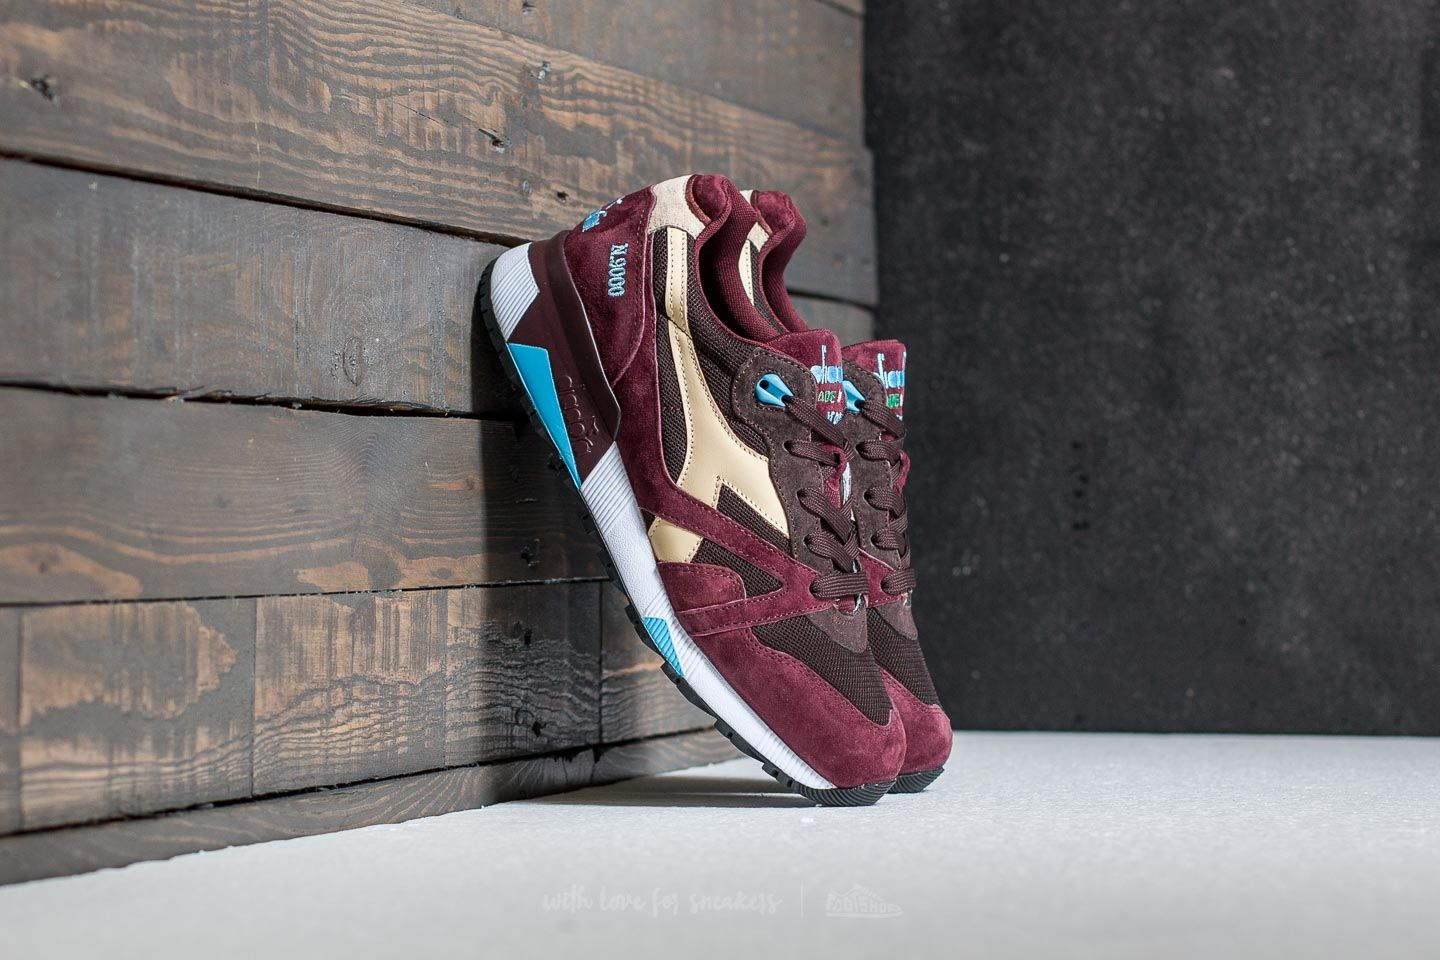 Diadora N9000 Italia After Dark/ Decadent Choco